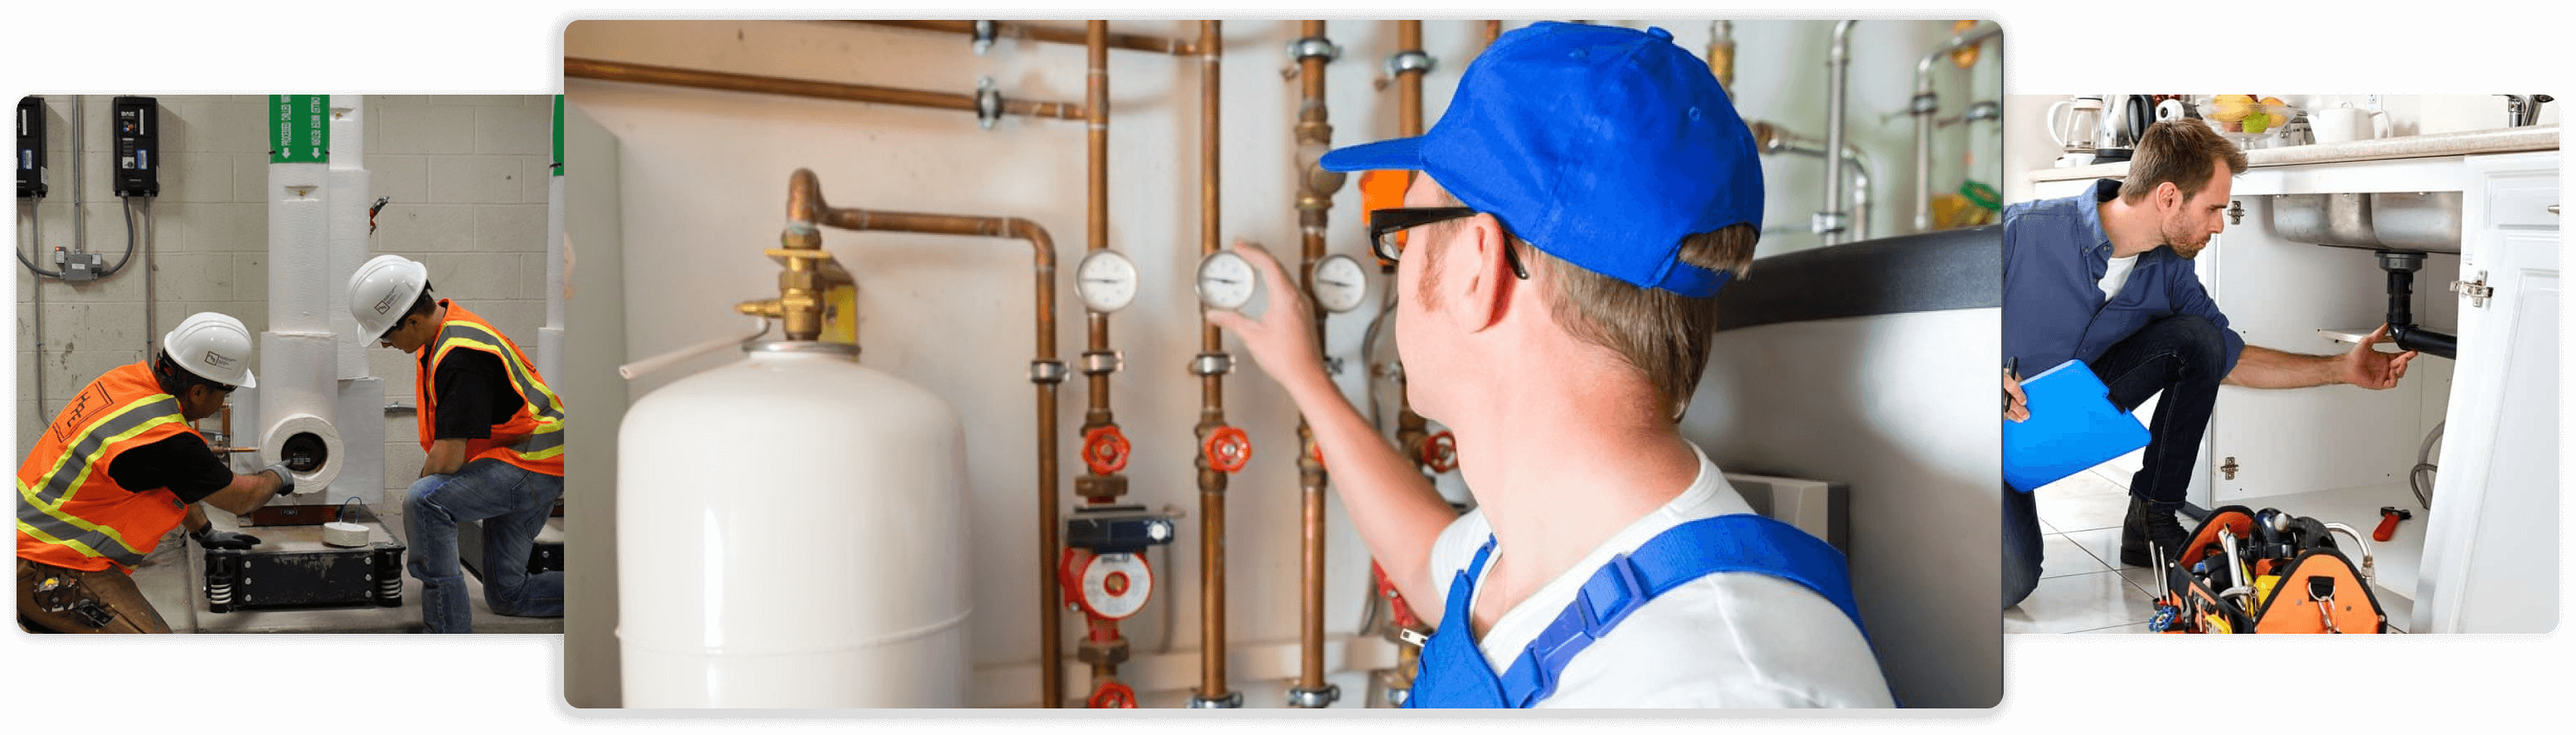 Heating and Plumbing Services